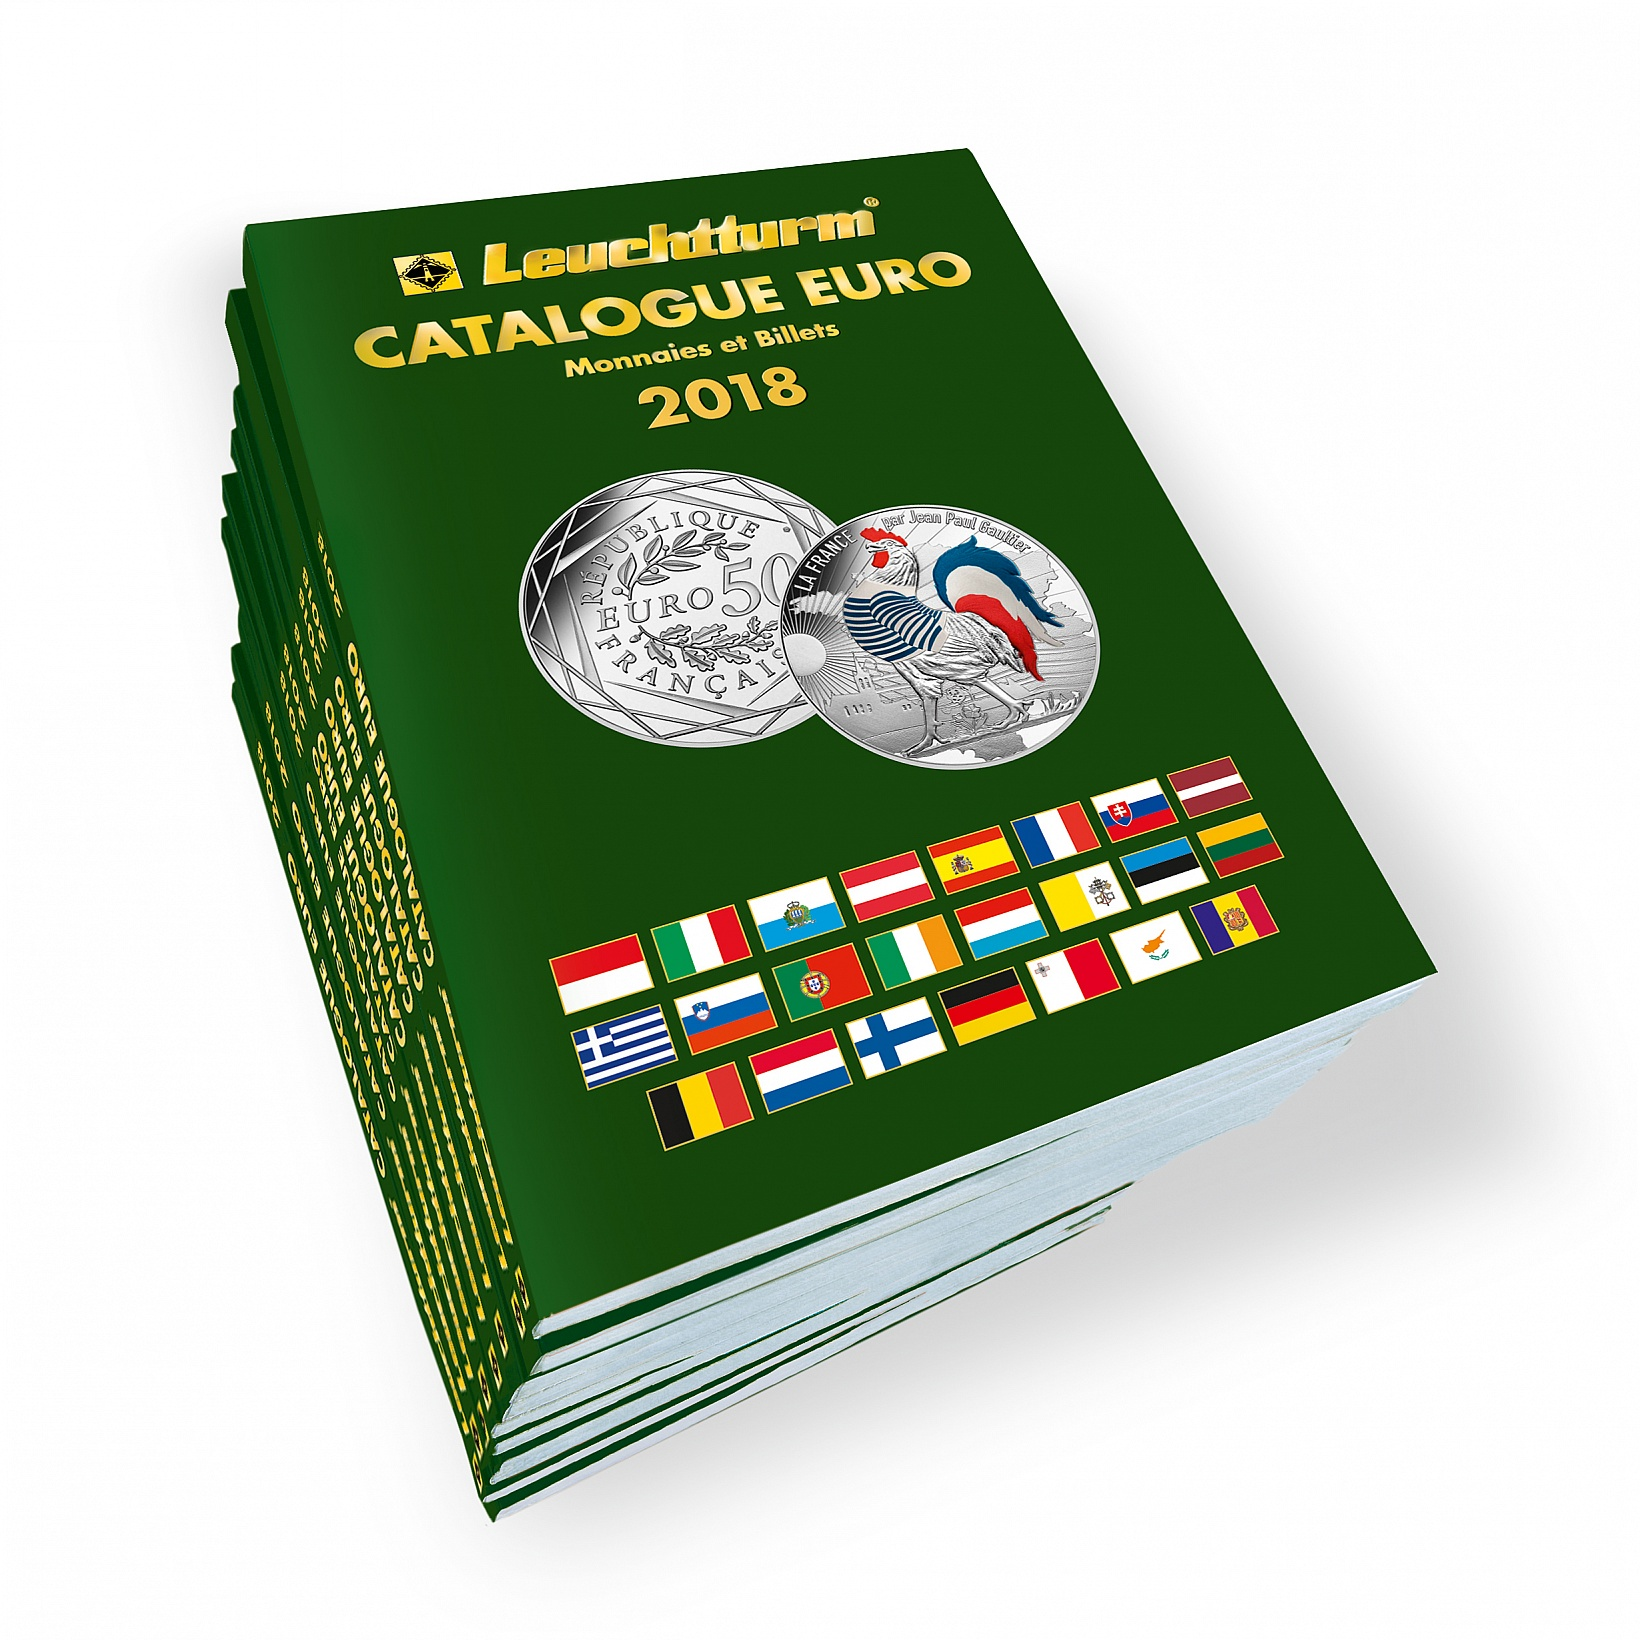 Catalogue euro 2018 Leuchtturm